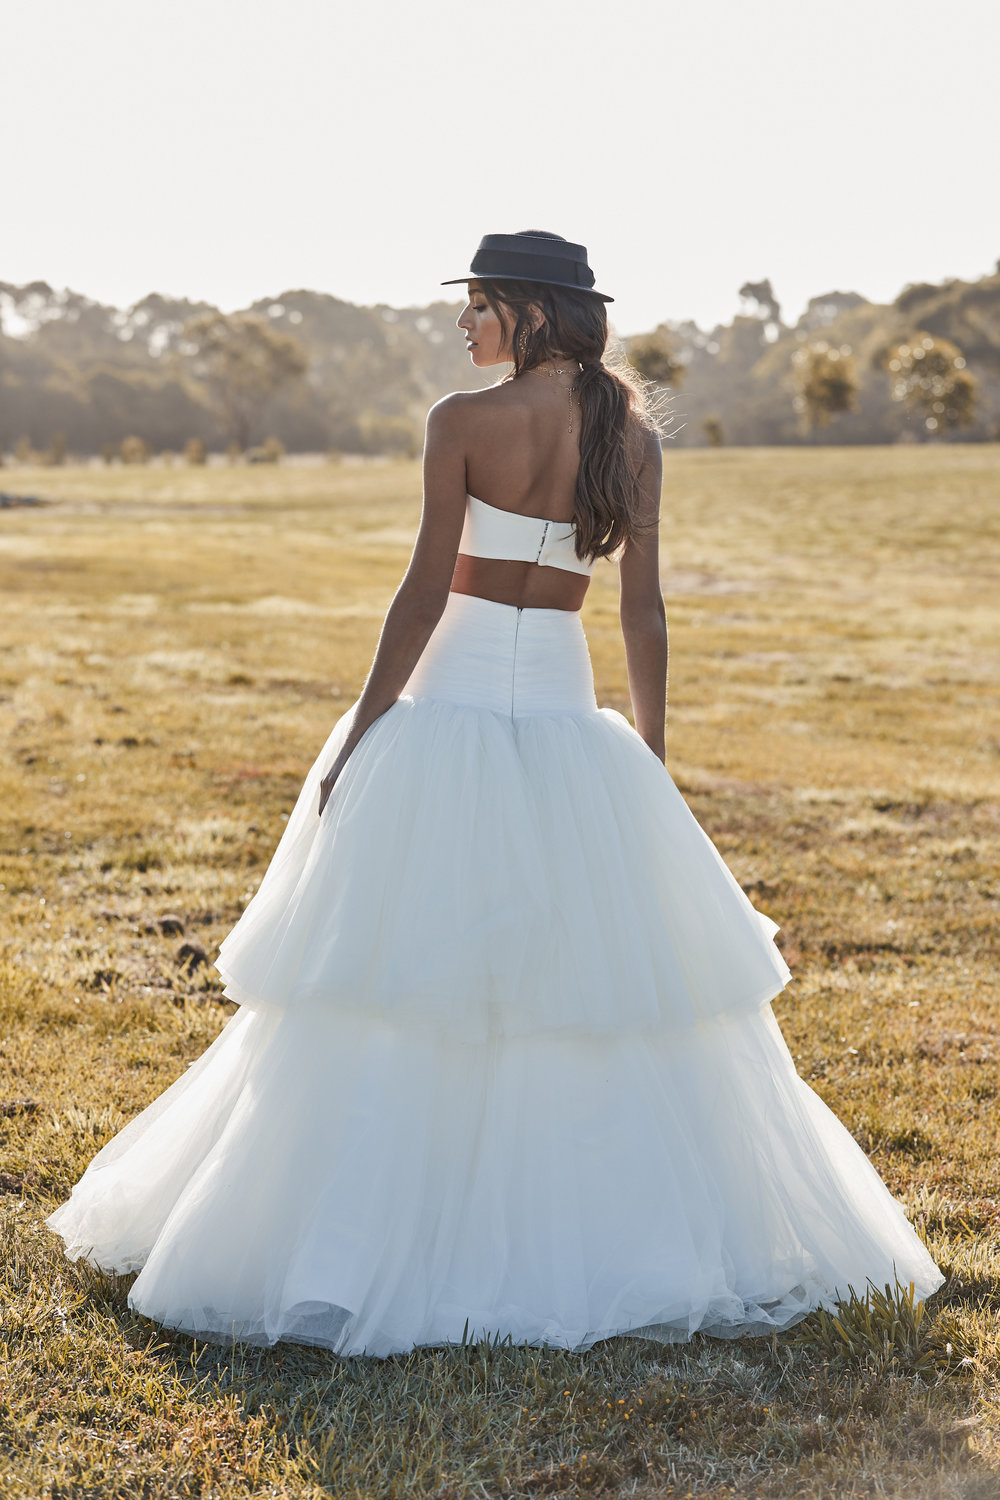 chosen-new-reign-murphy-skirt-wedding-dress-back-colour.jpg